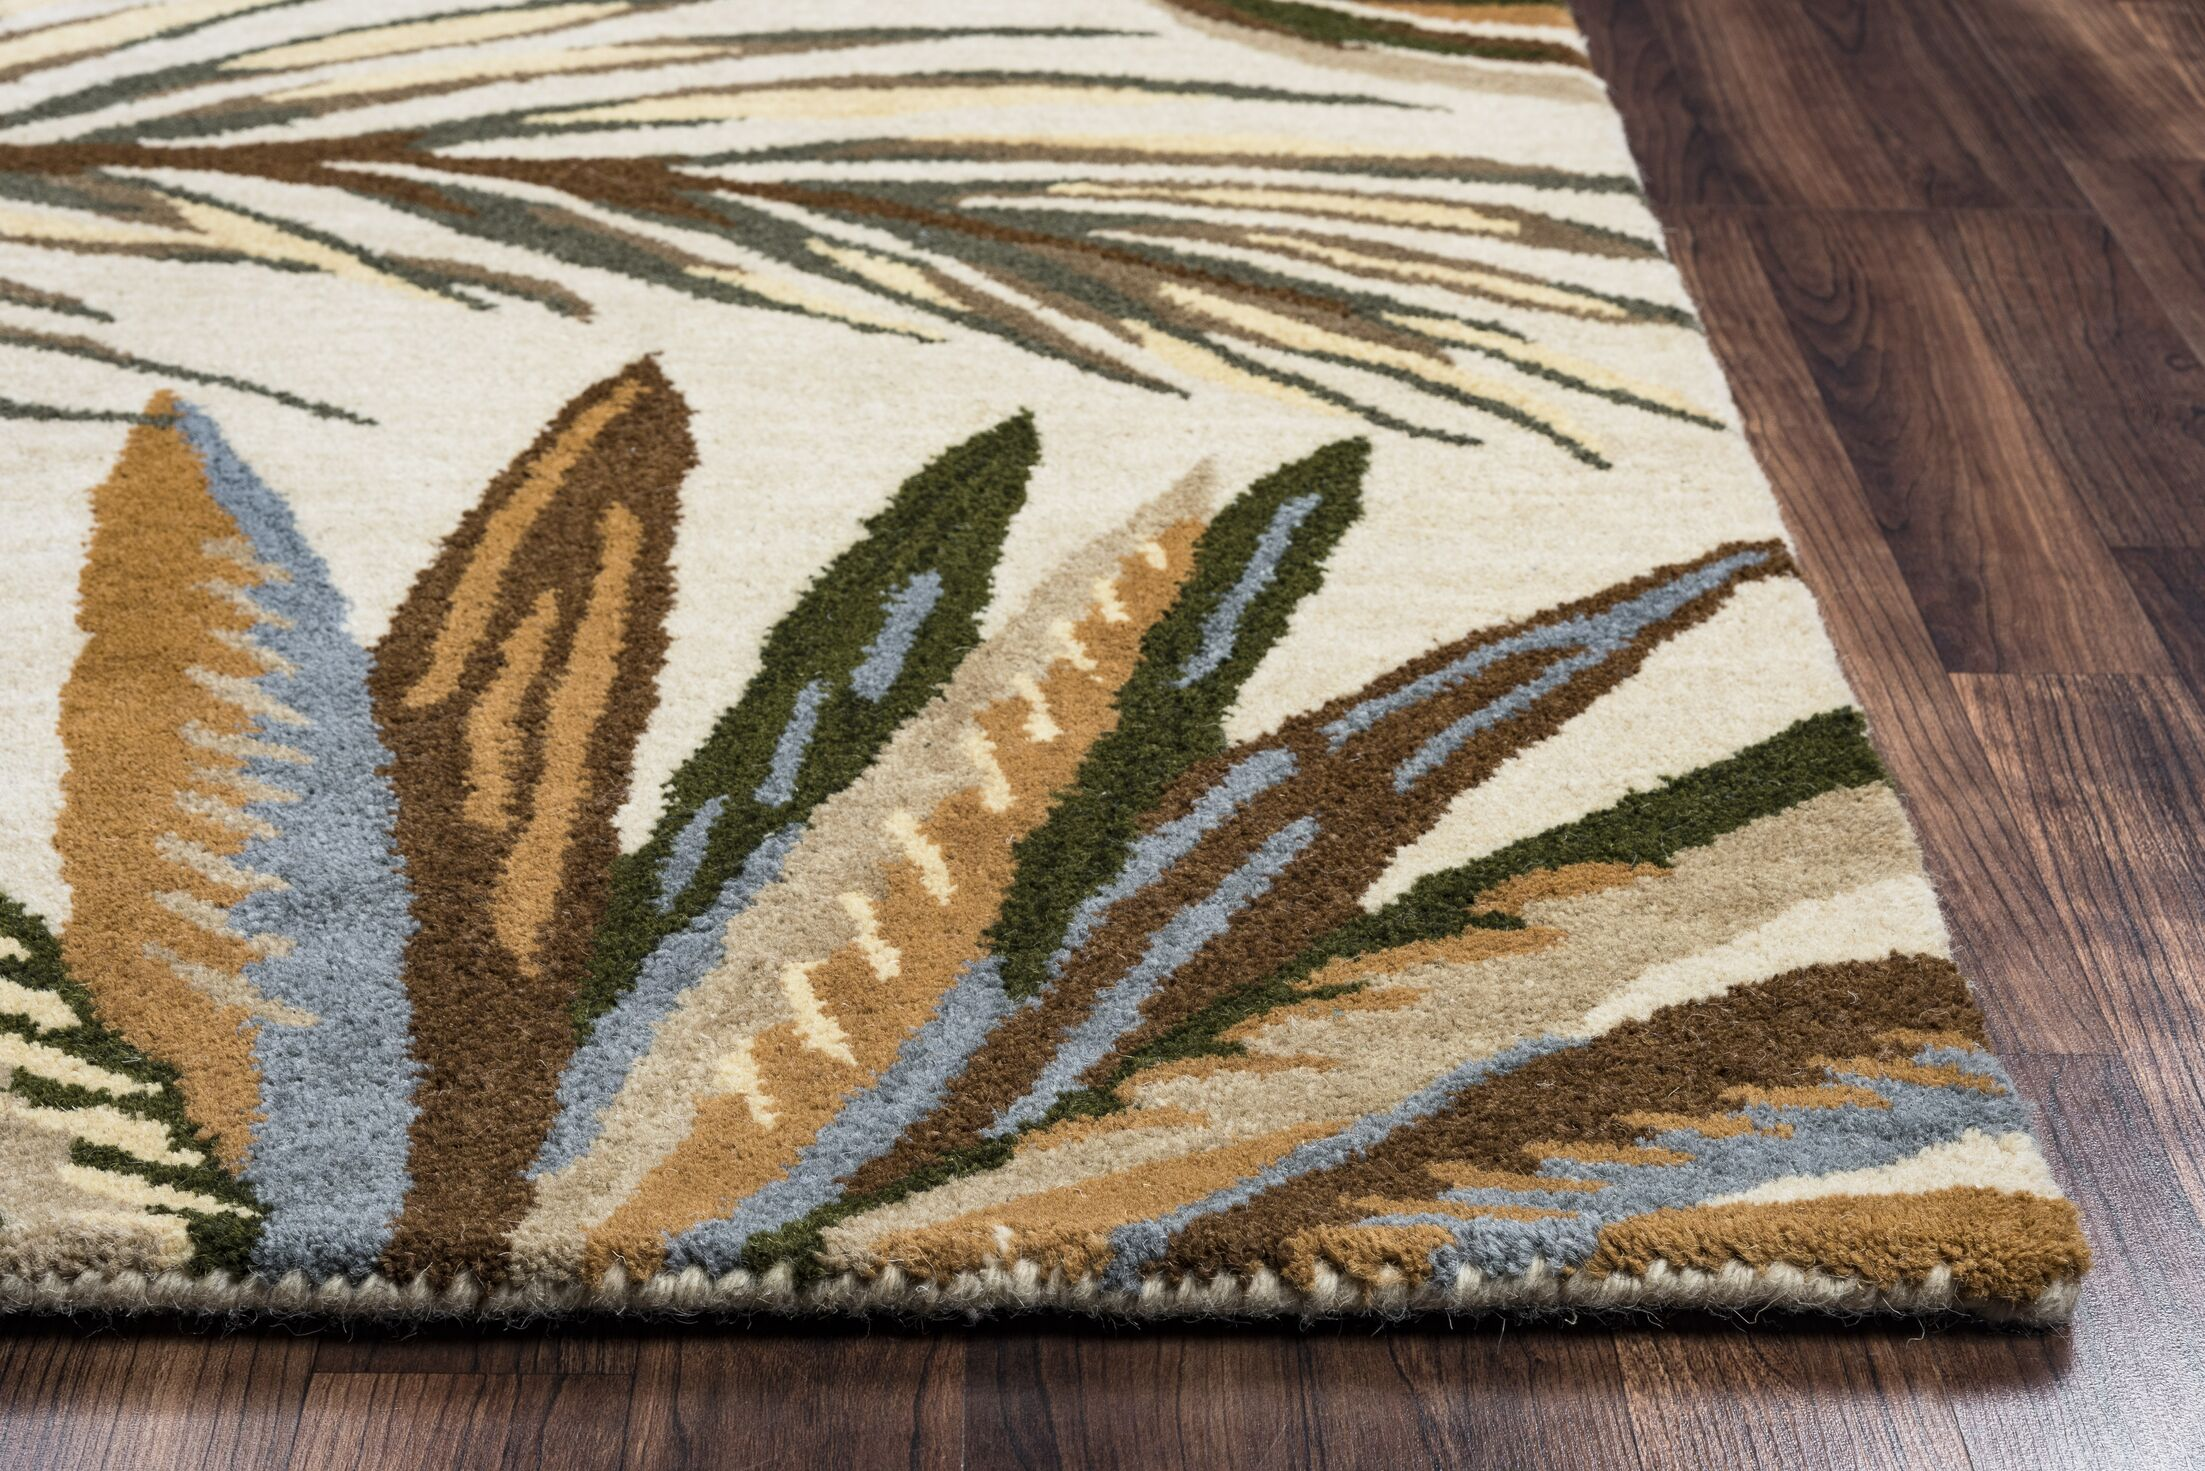 Minnie Hand-Tufted Area Rug Rug Size: Runner 2'6